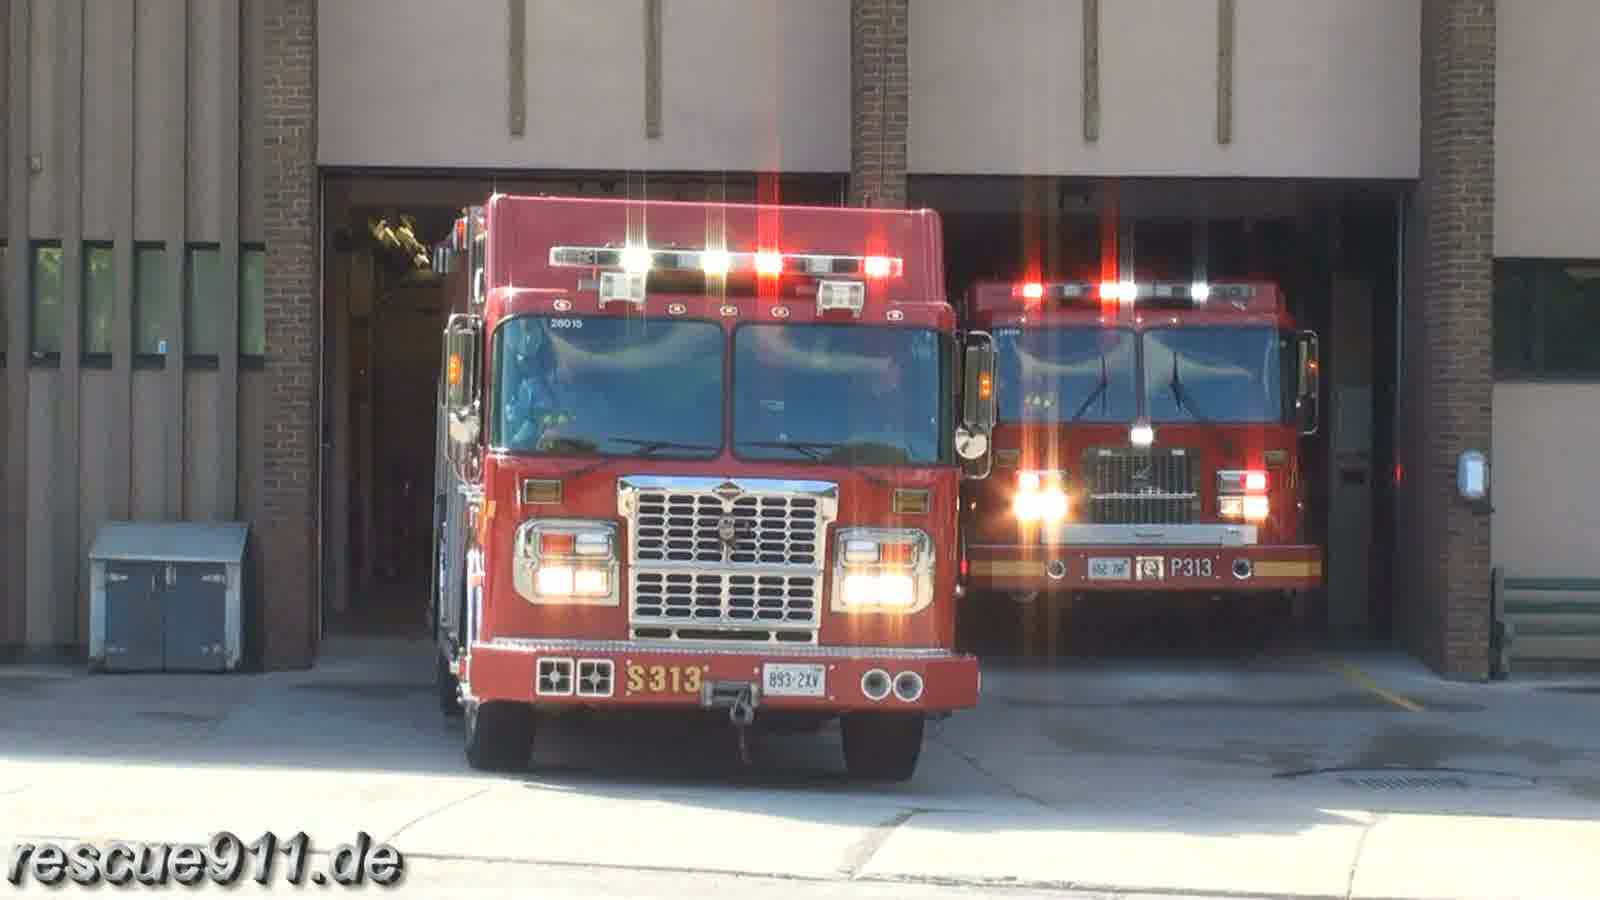 Squad 313 + Pump 313 Toronto Fire Services (stream)